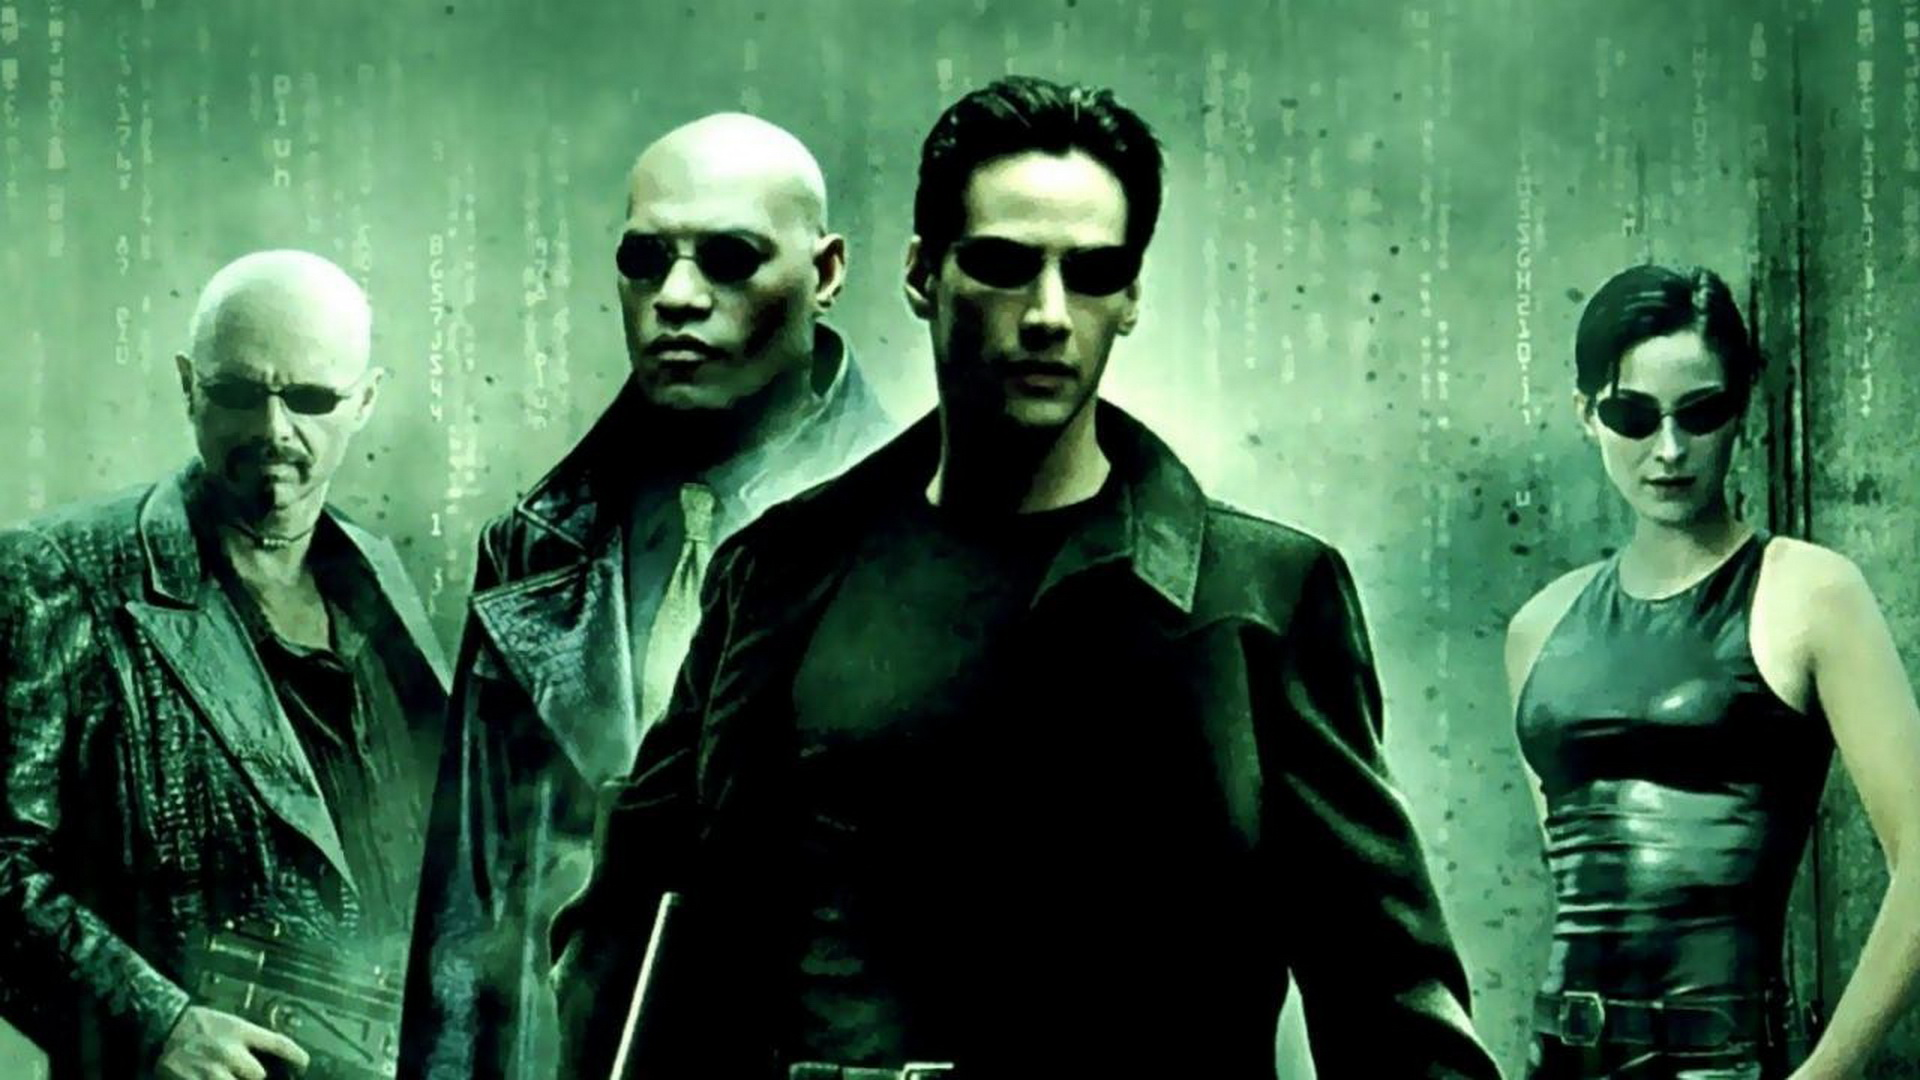 characterization of neo from the movie the matrix Get an answer for 'what are the archetypes used in the movie, the matrix' and find homework help for other cinema questions at enotes.